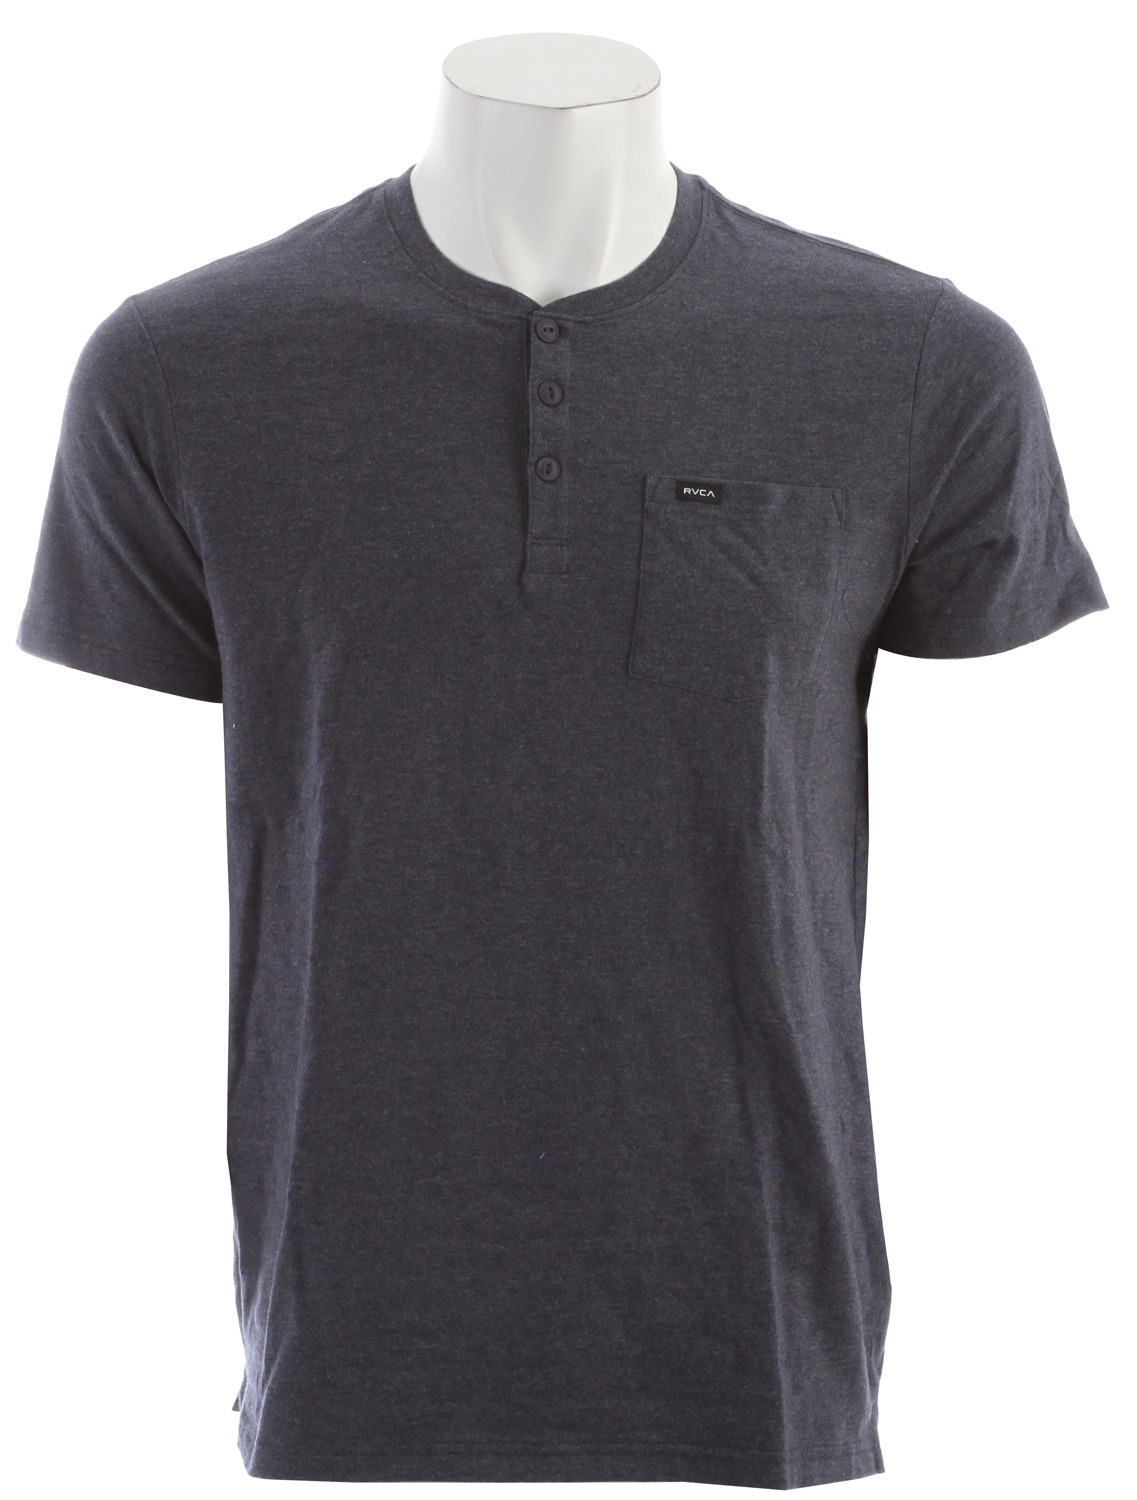 RVCA Shopkeeper Henley Ink Heather - $27.95